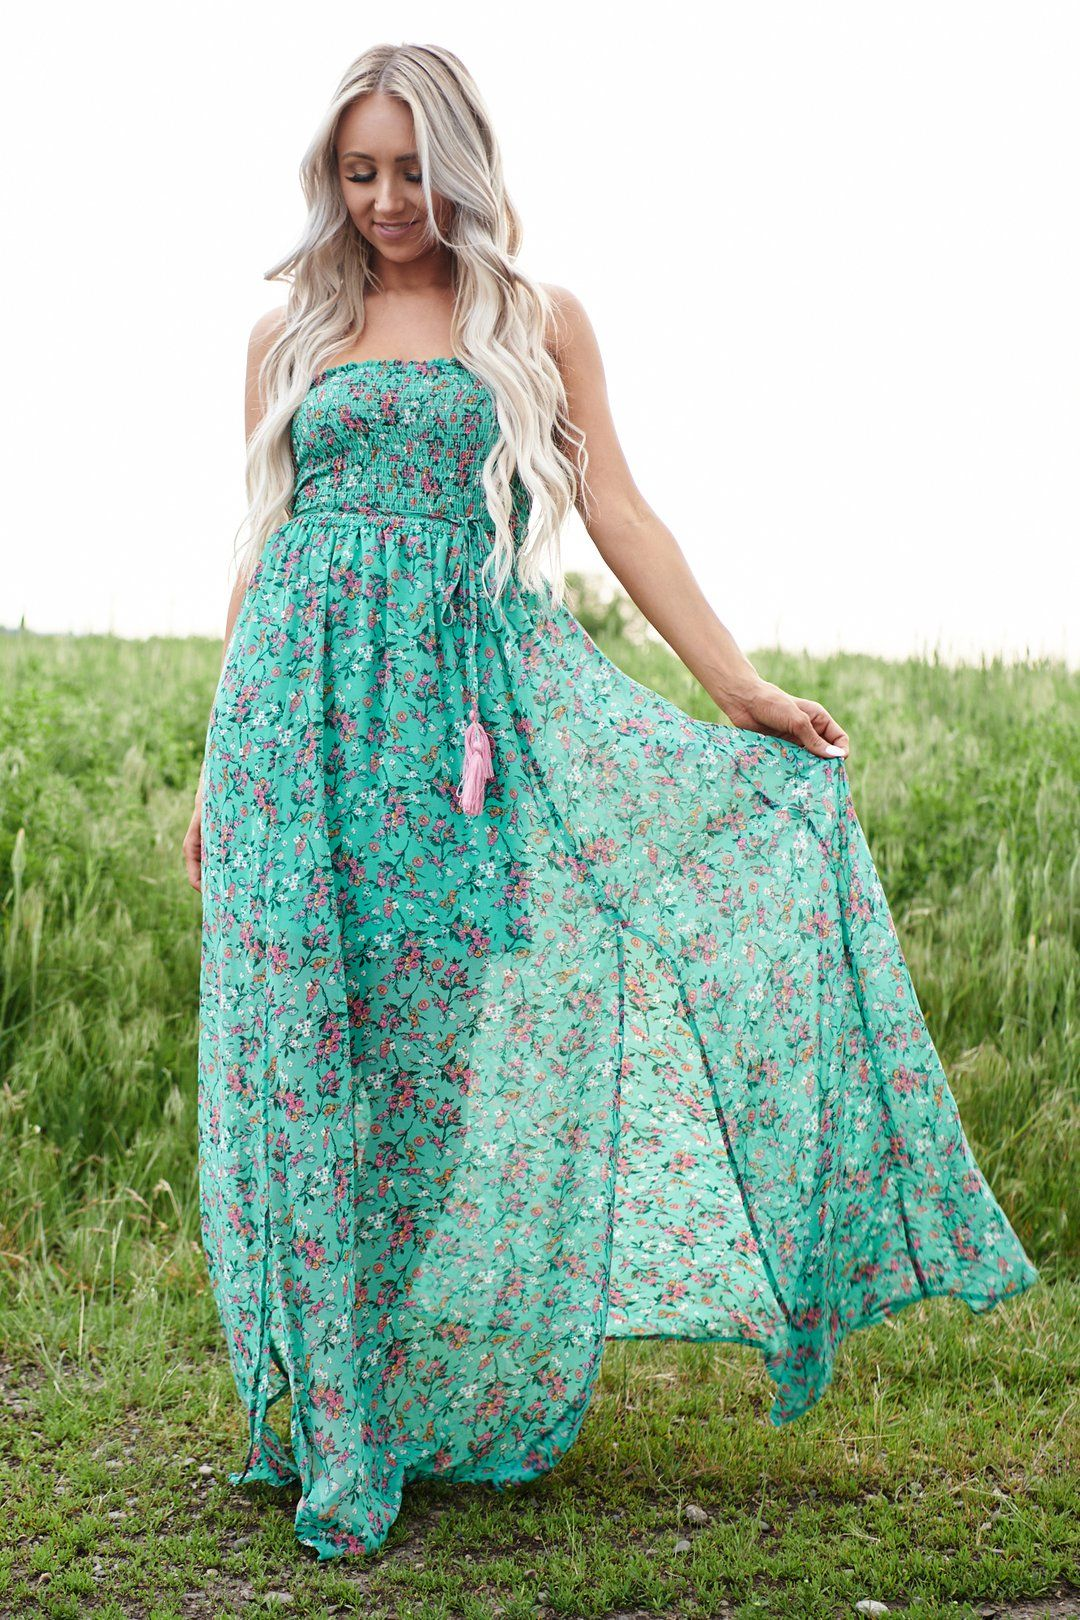 Lainey Strapless Floral Maxi Dress Green Multi Maxi Dress Green Floral Maxi Dress Green Dress [ 1620 x 1080 Pixel ]